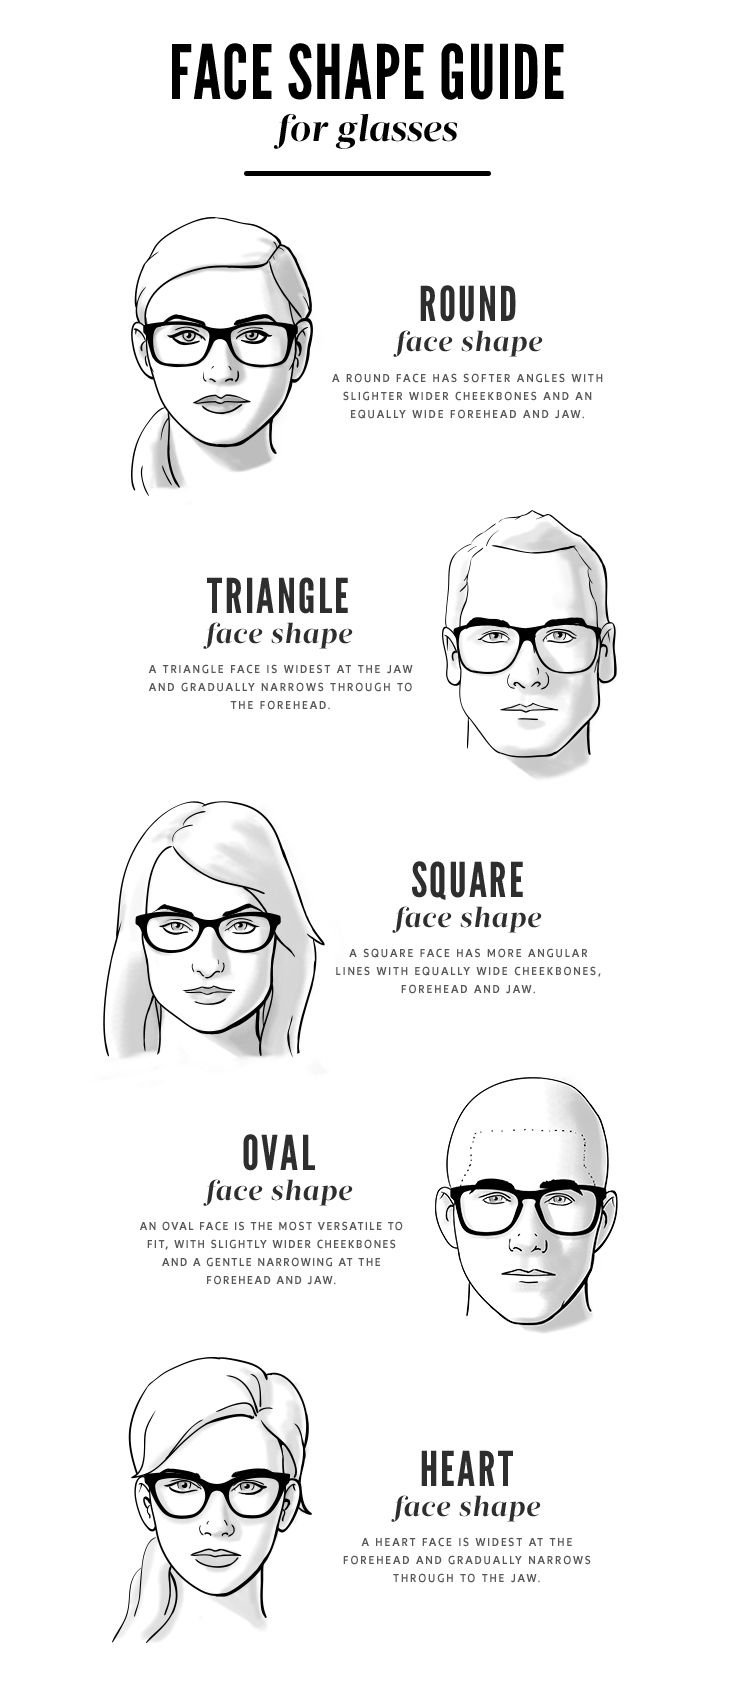 a36608a83ec Face Shape Guide for Glasses